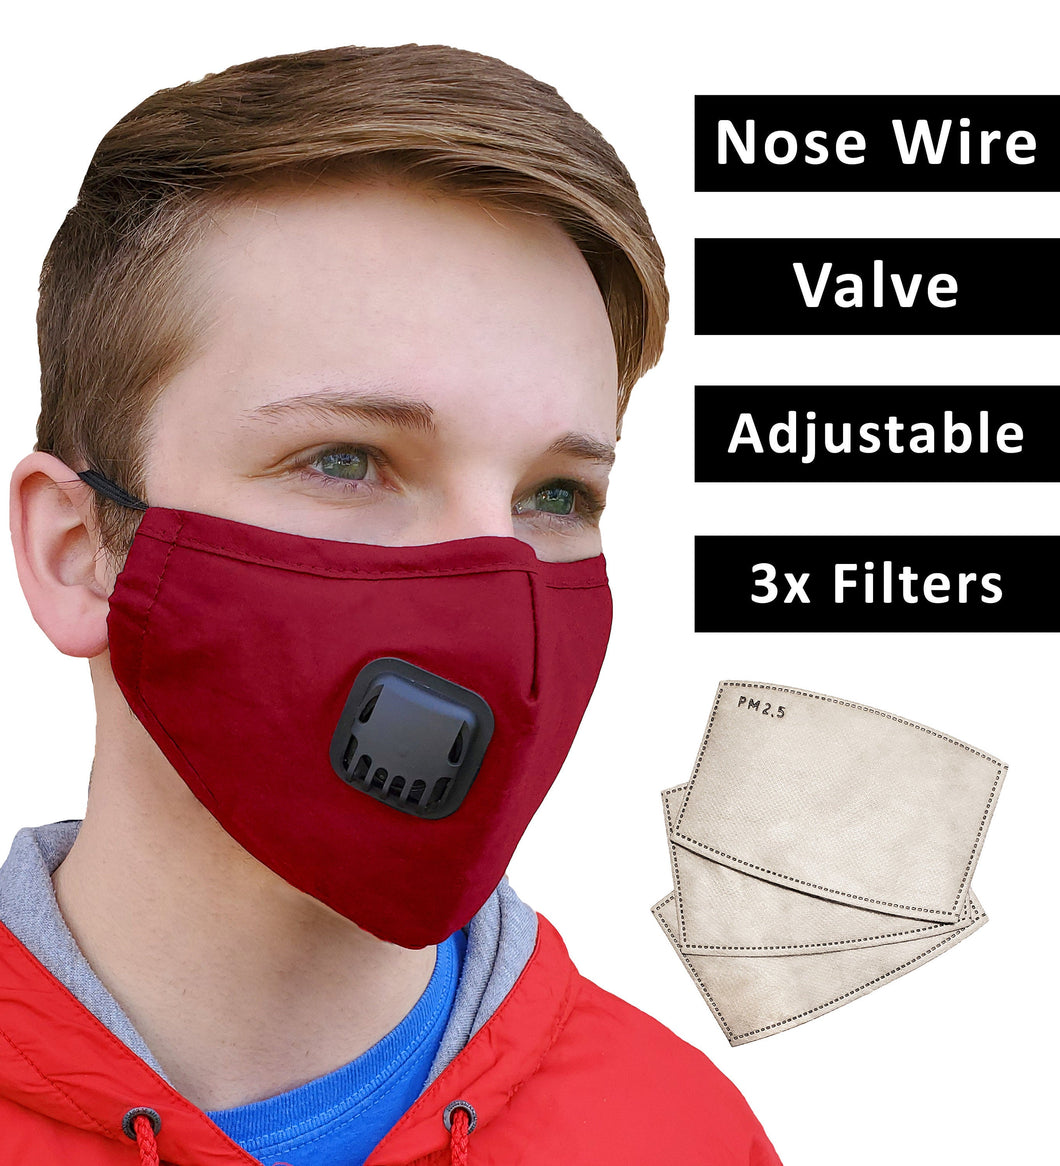 Red Face Mask + 3 Filters PM 2.5, Cotton, Adjustable Elastic Earloops Metal Nose Clip, Re-Usable, Small, Medium Adult, Fast Shipping USA